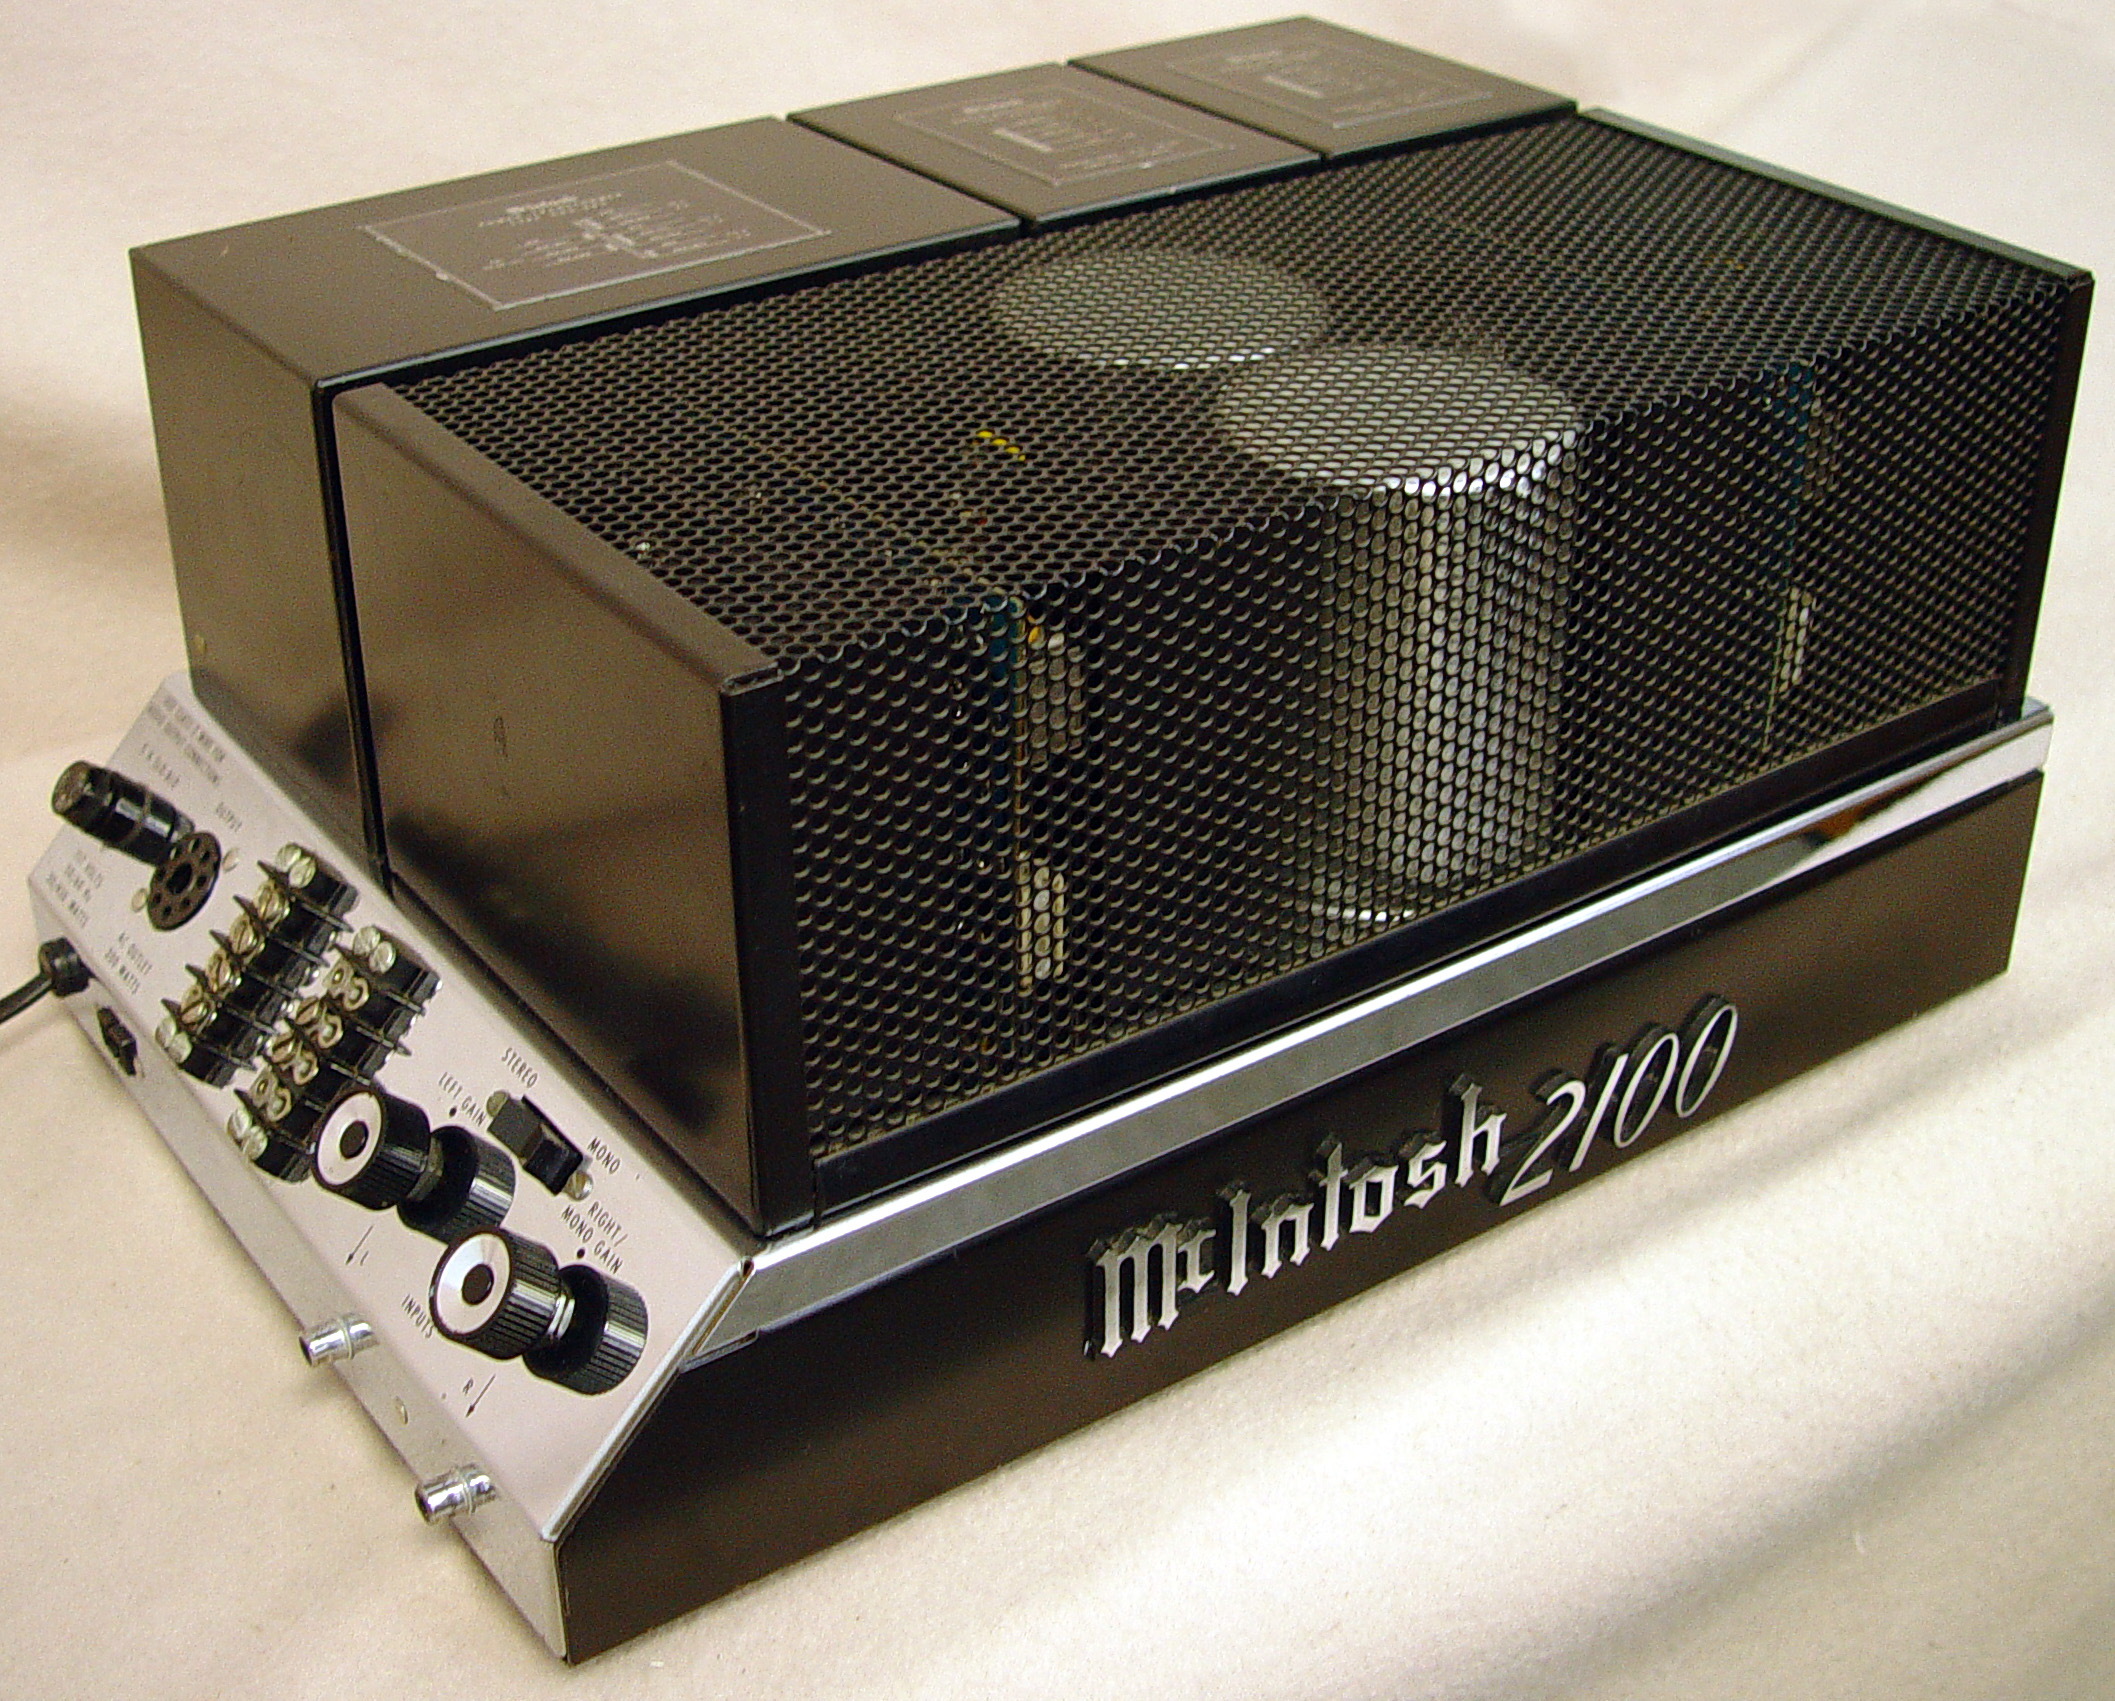 McIntosh 2100 power amplifiers